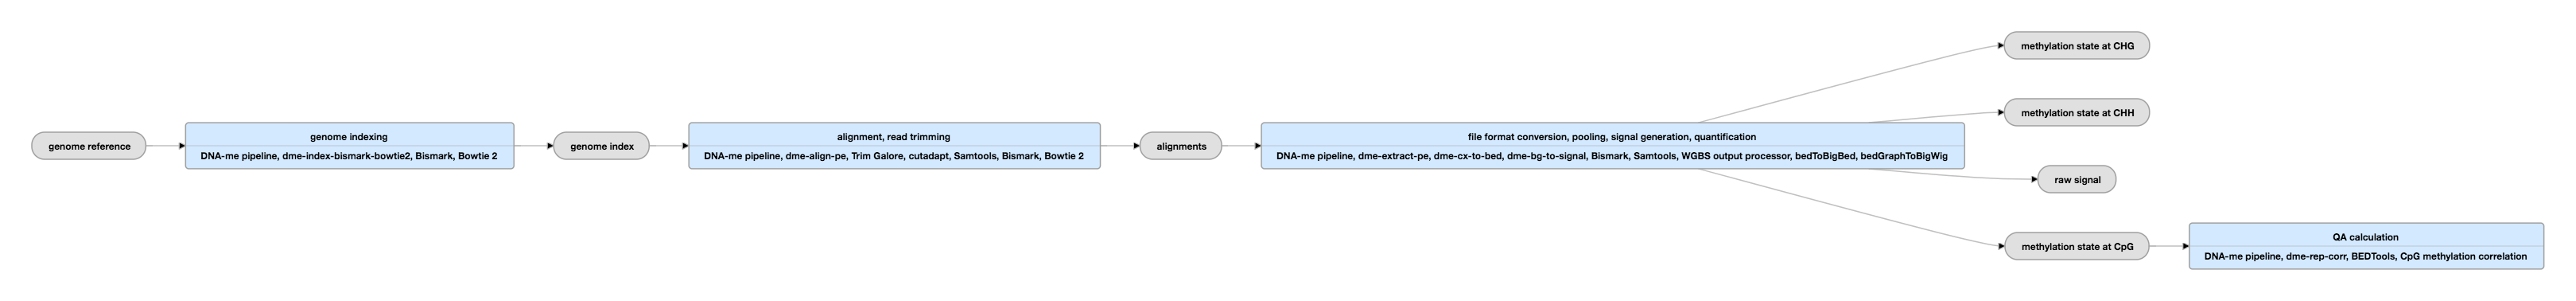 Whole-Genome Bisulfite Sequencing Data Standards and